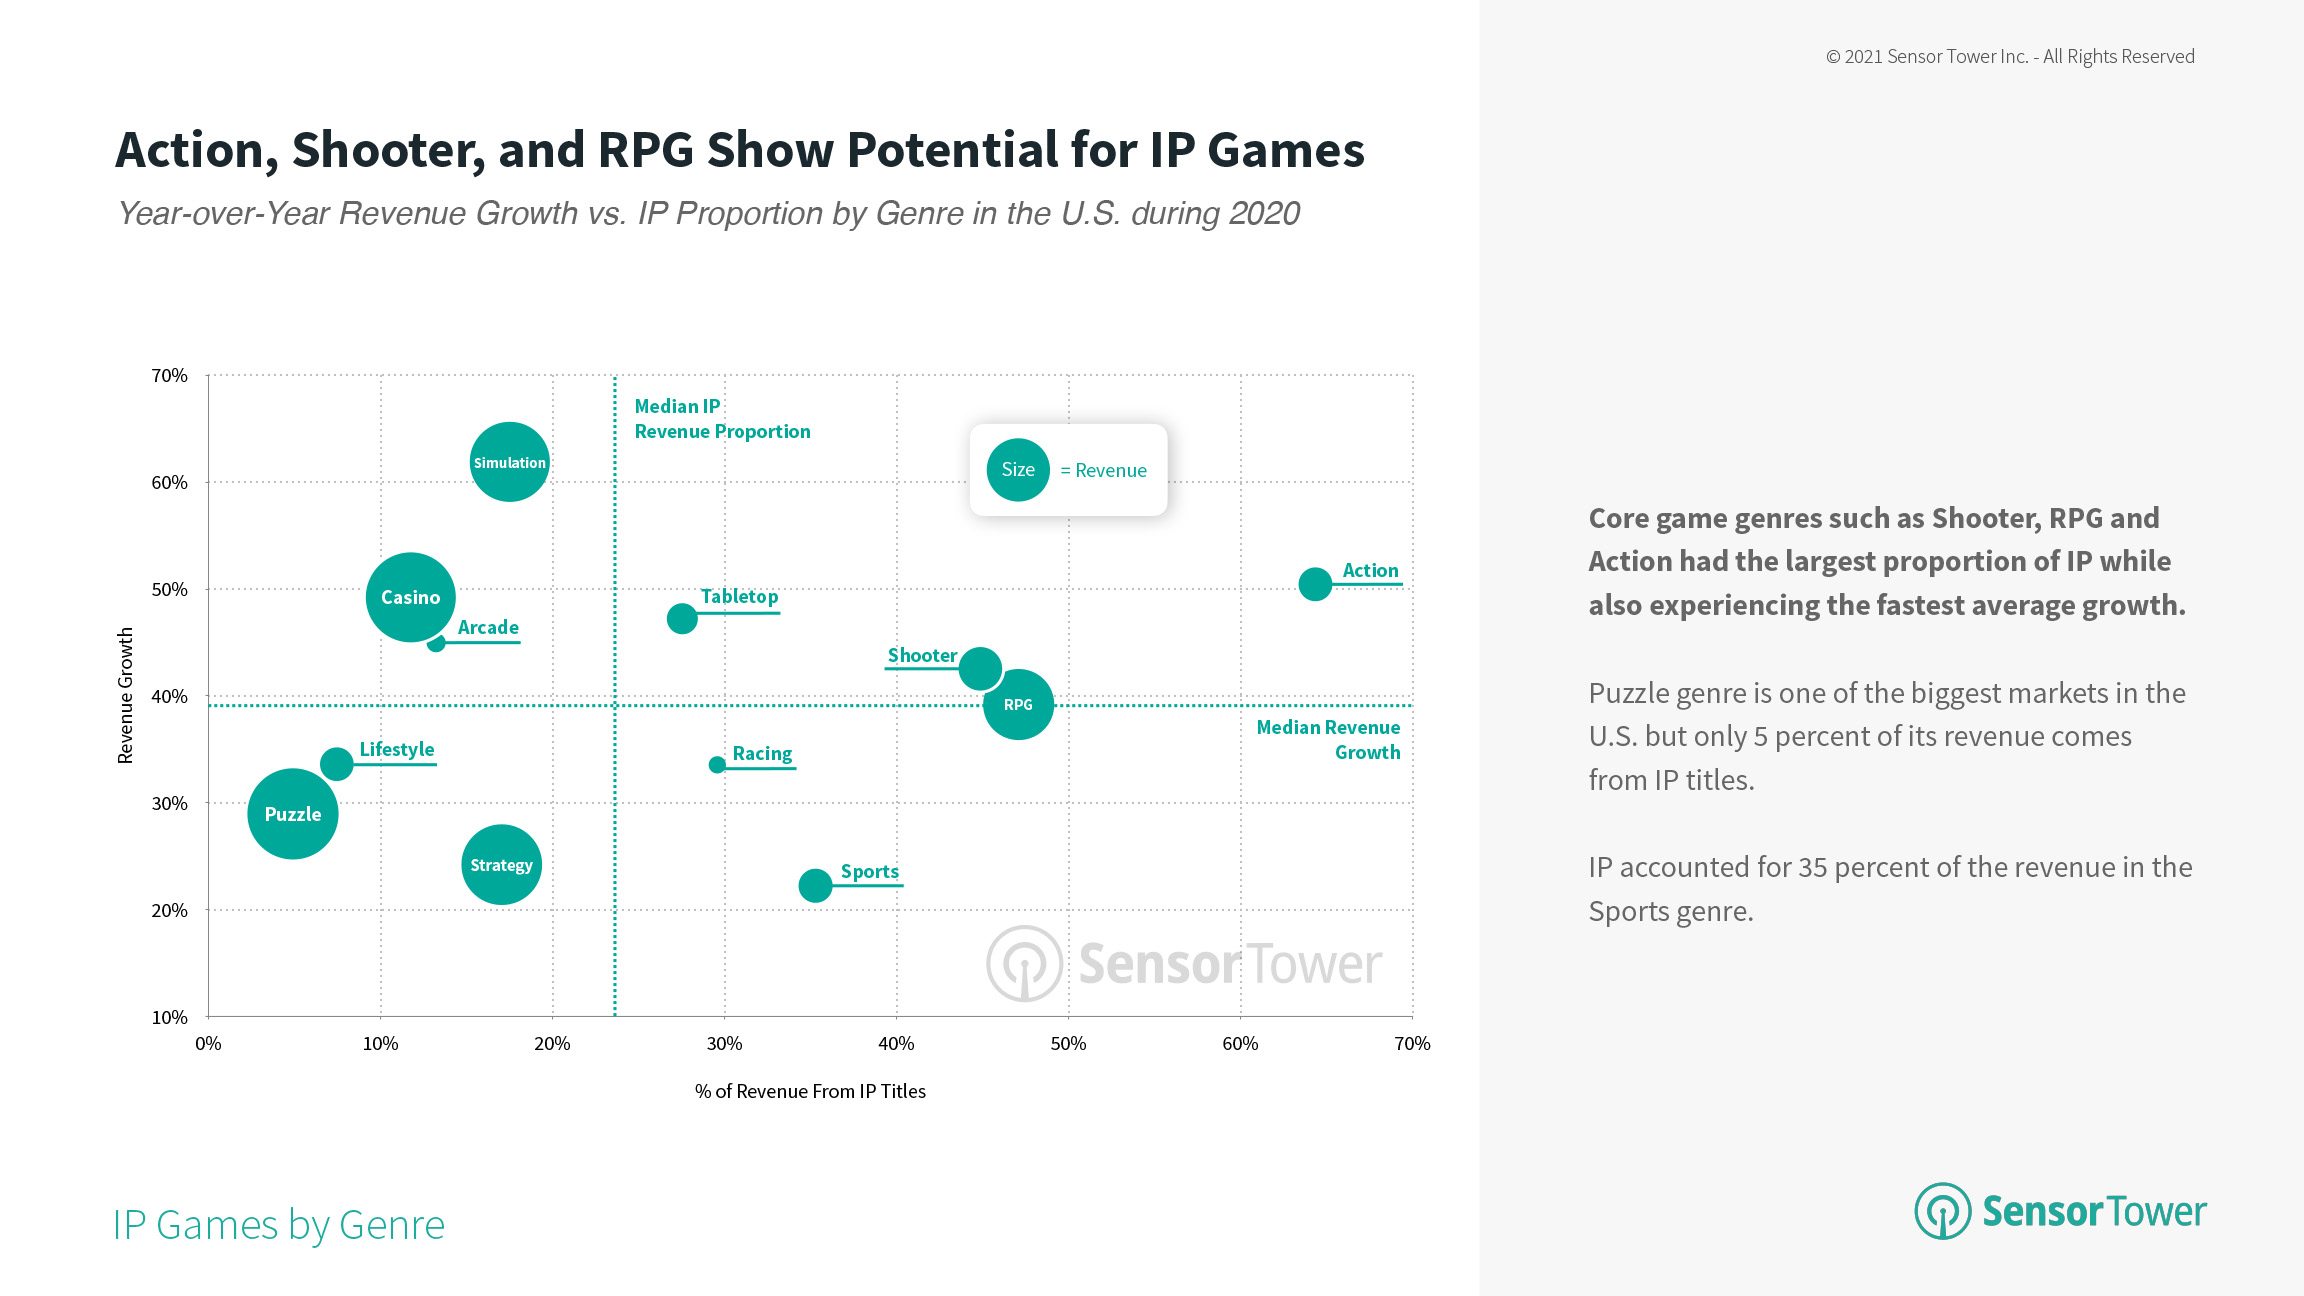 Year-Over-Year Revenue Growth Vs IP Proportion by Genre in the U.S. in 2020